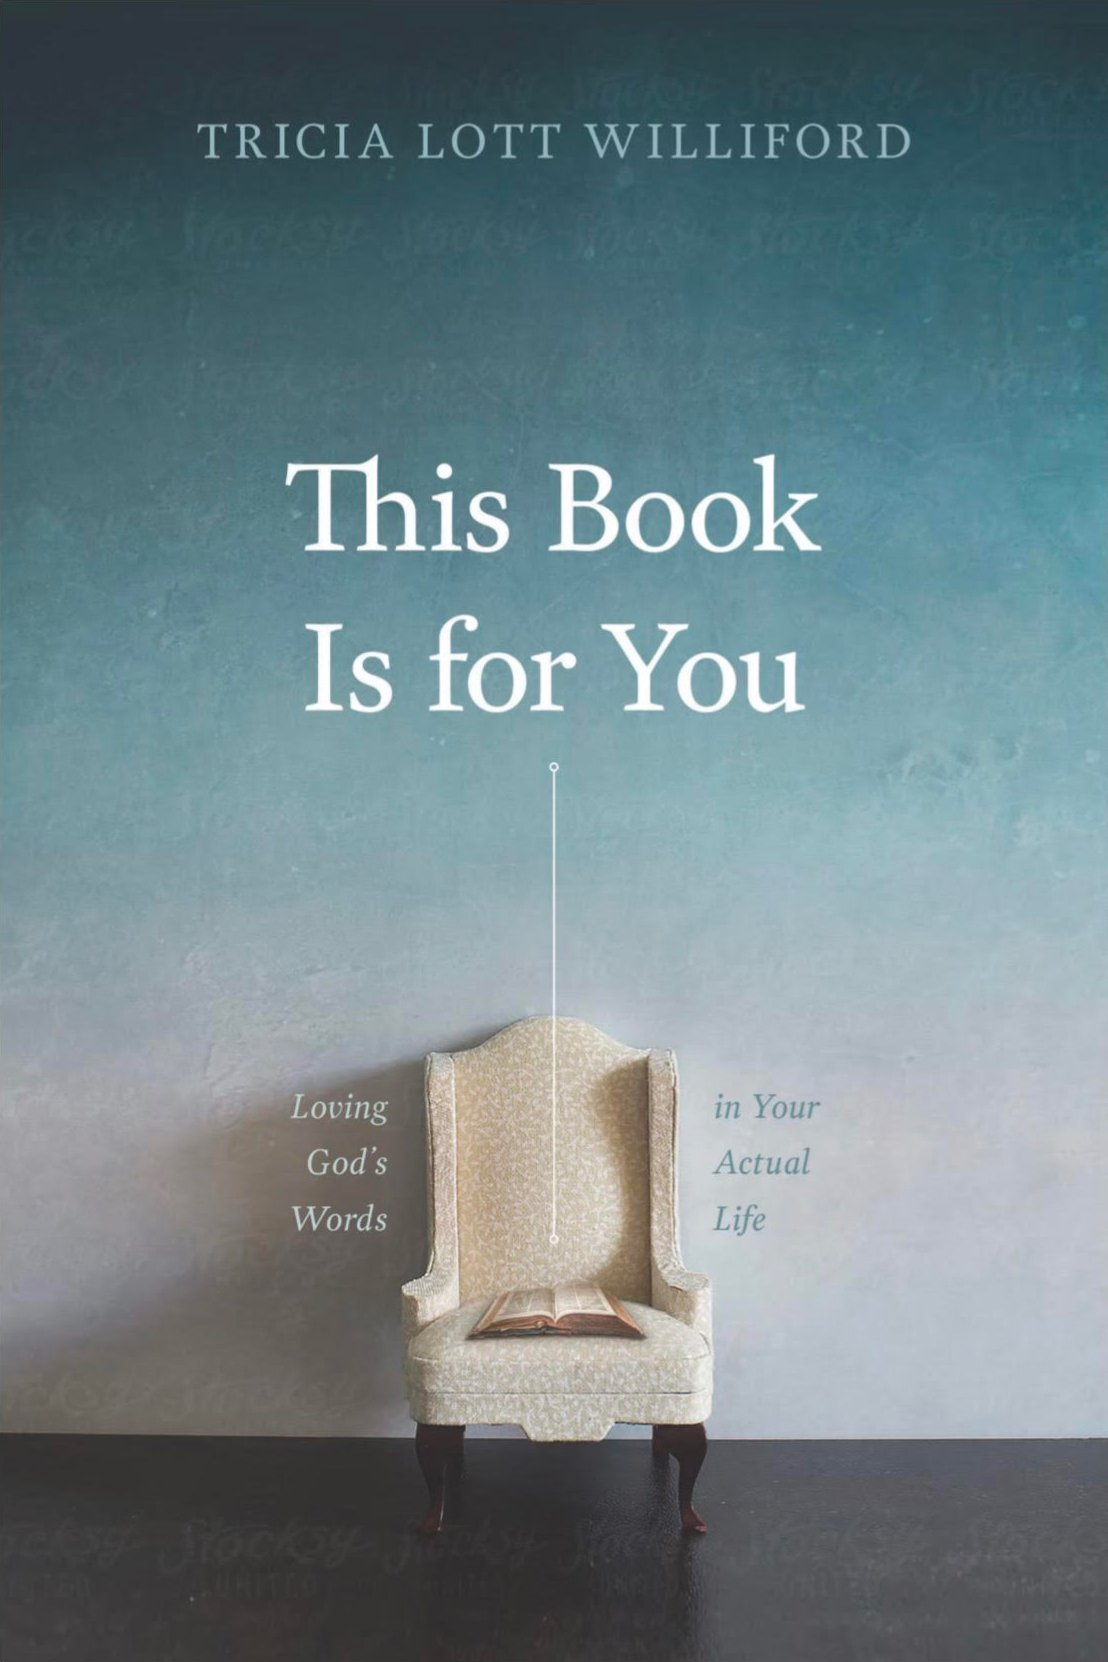 thisbookisforyou